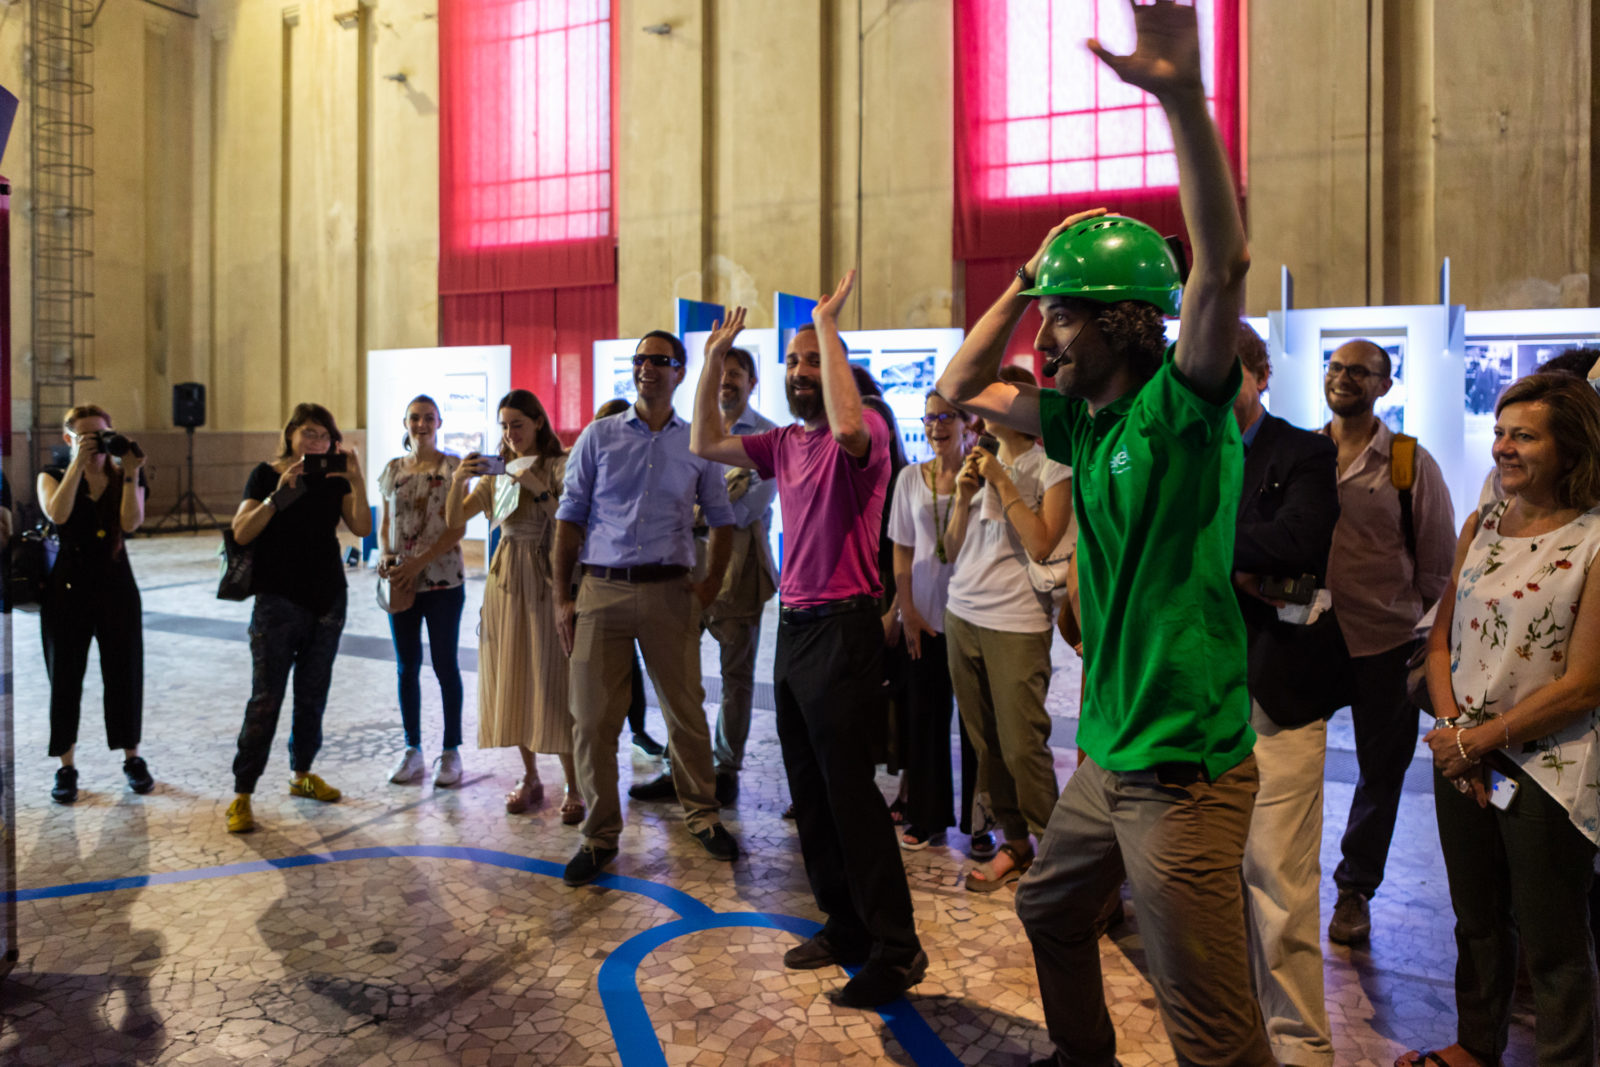 Acquoria Hydro Plant Hosted an Interactive and Meaningful Exhibition